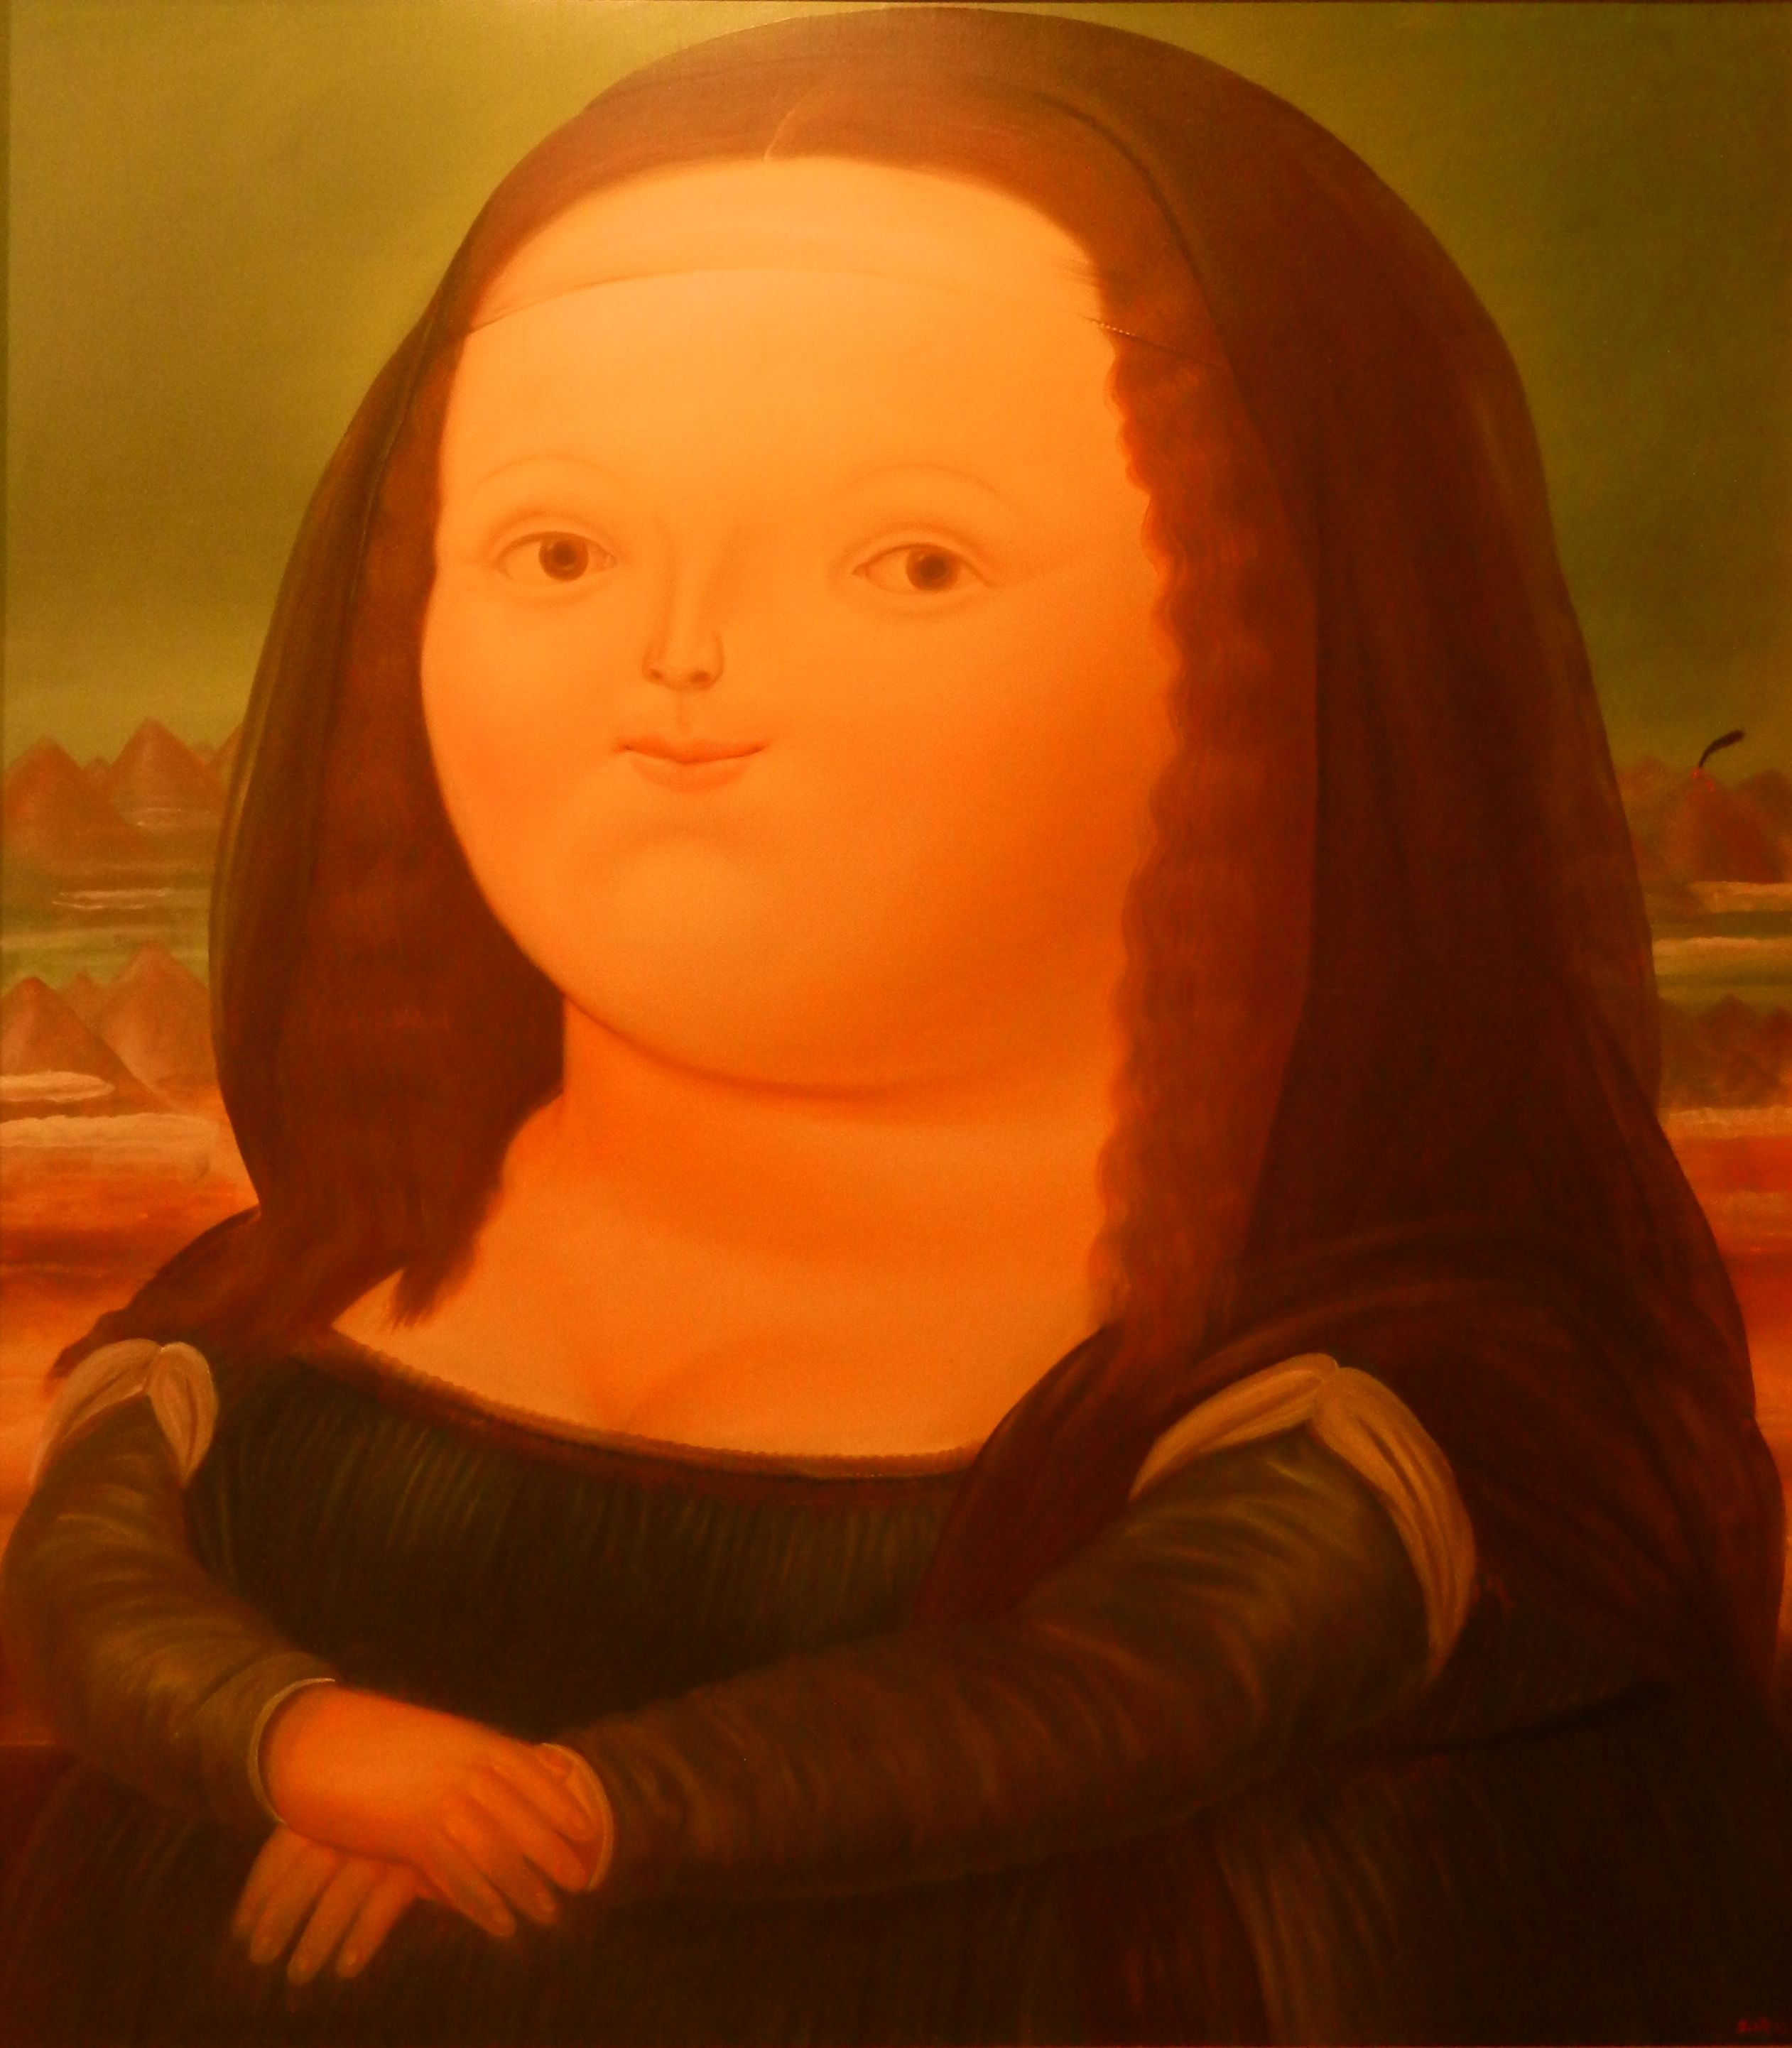 #Colombia Monalisa Colombian style by Fernando Botero, Museo Botero #Bogota @ AnnMertens